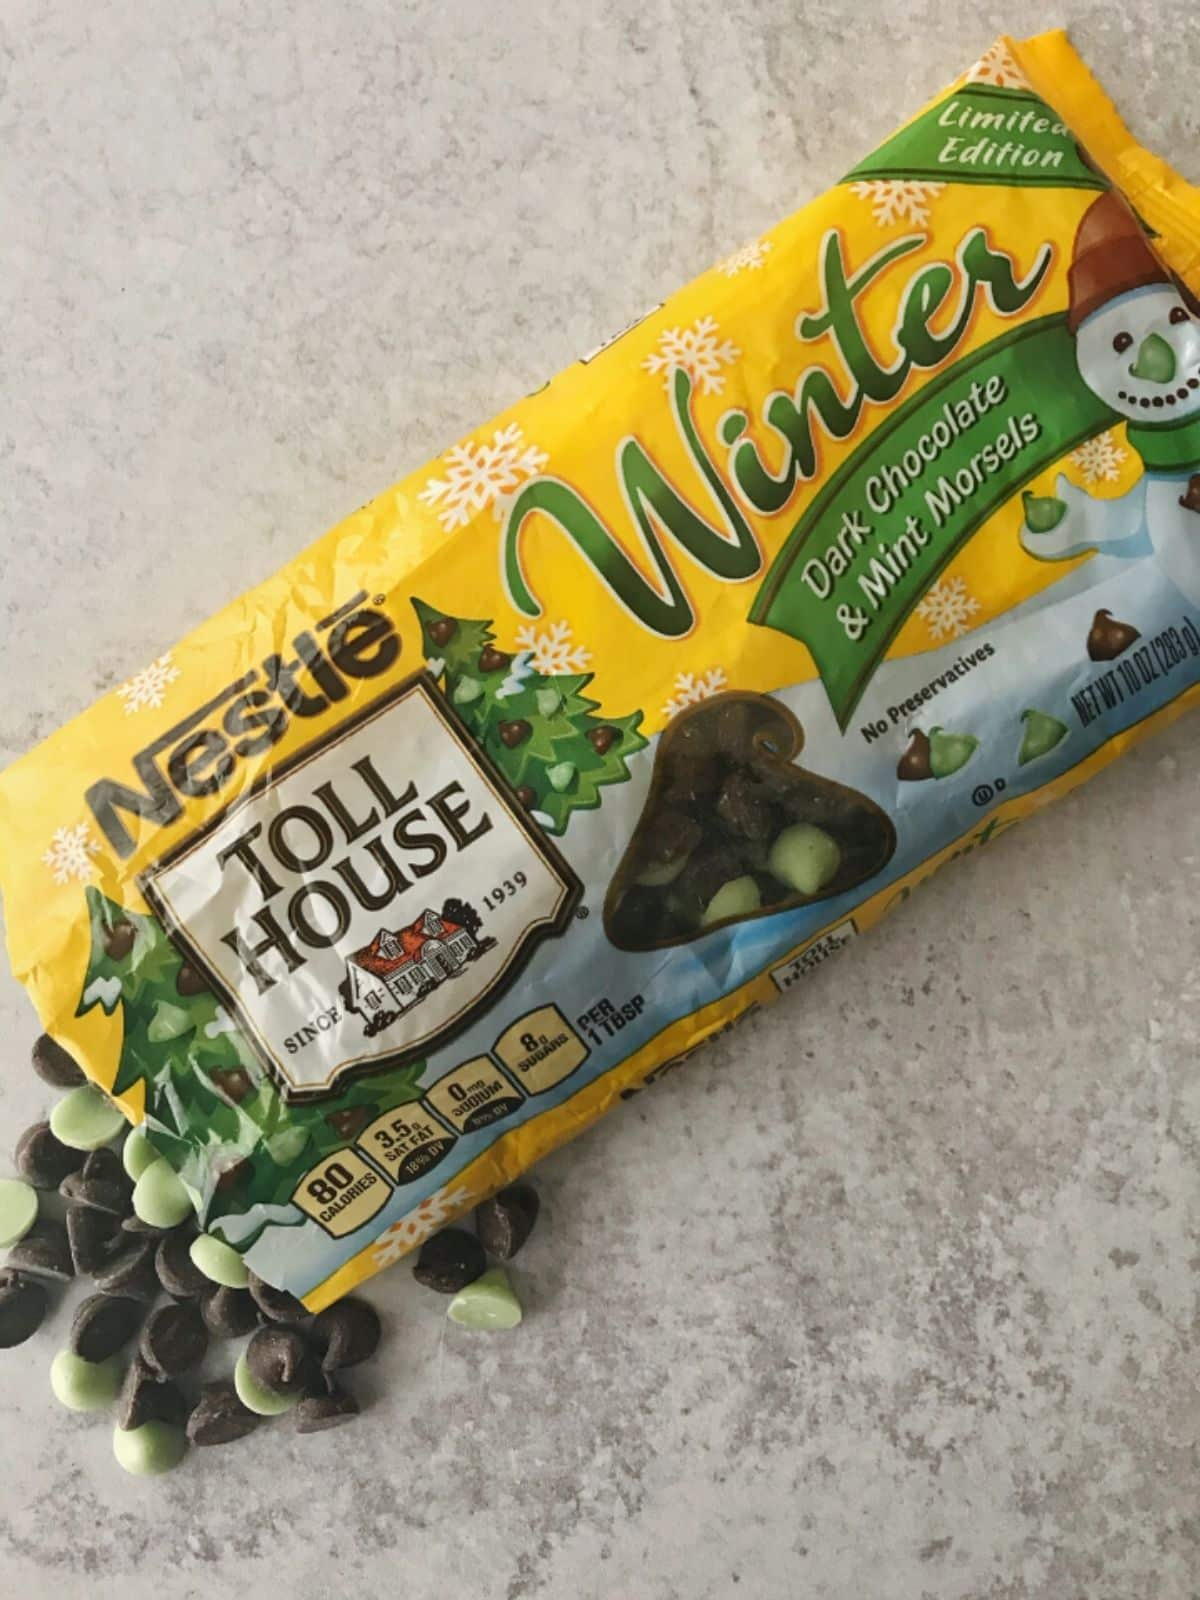 bag of dark chocolate and mint morsels